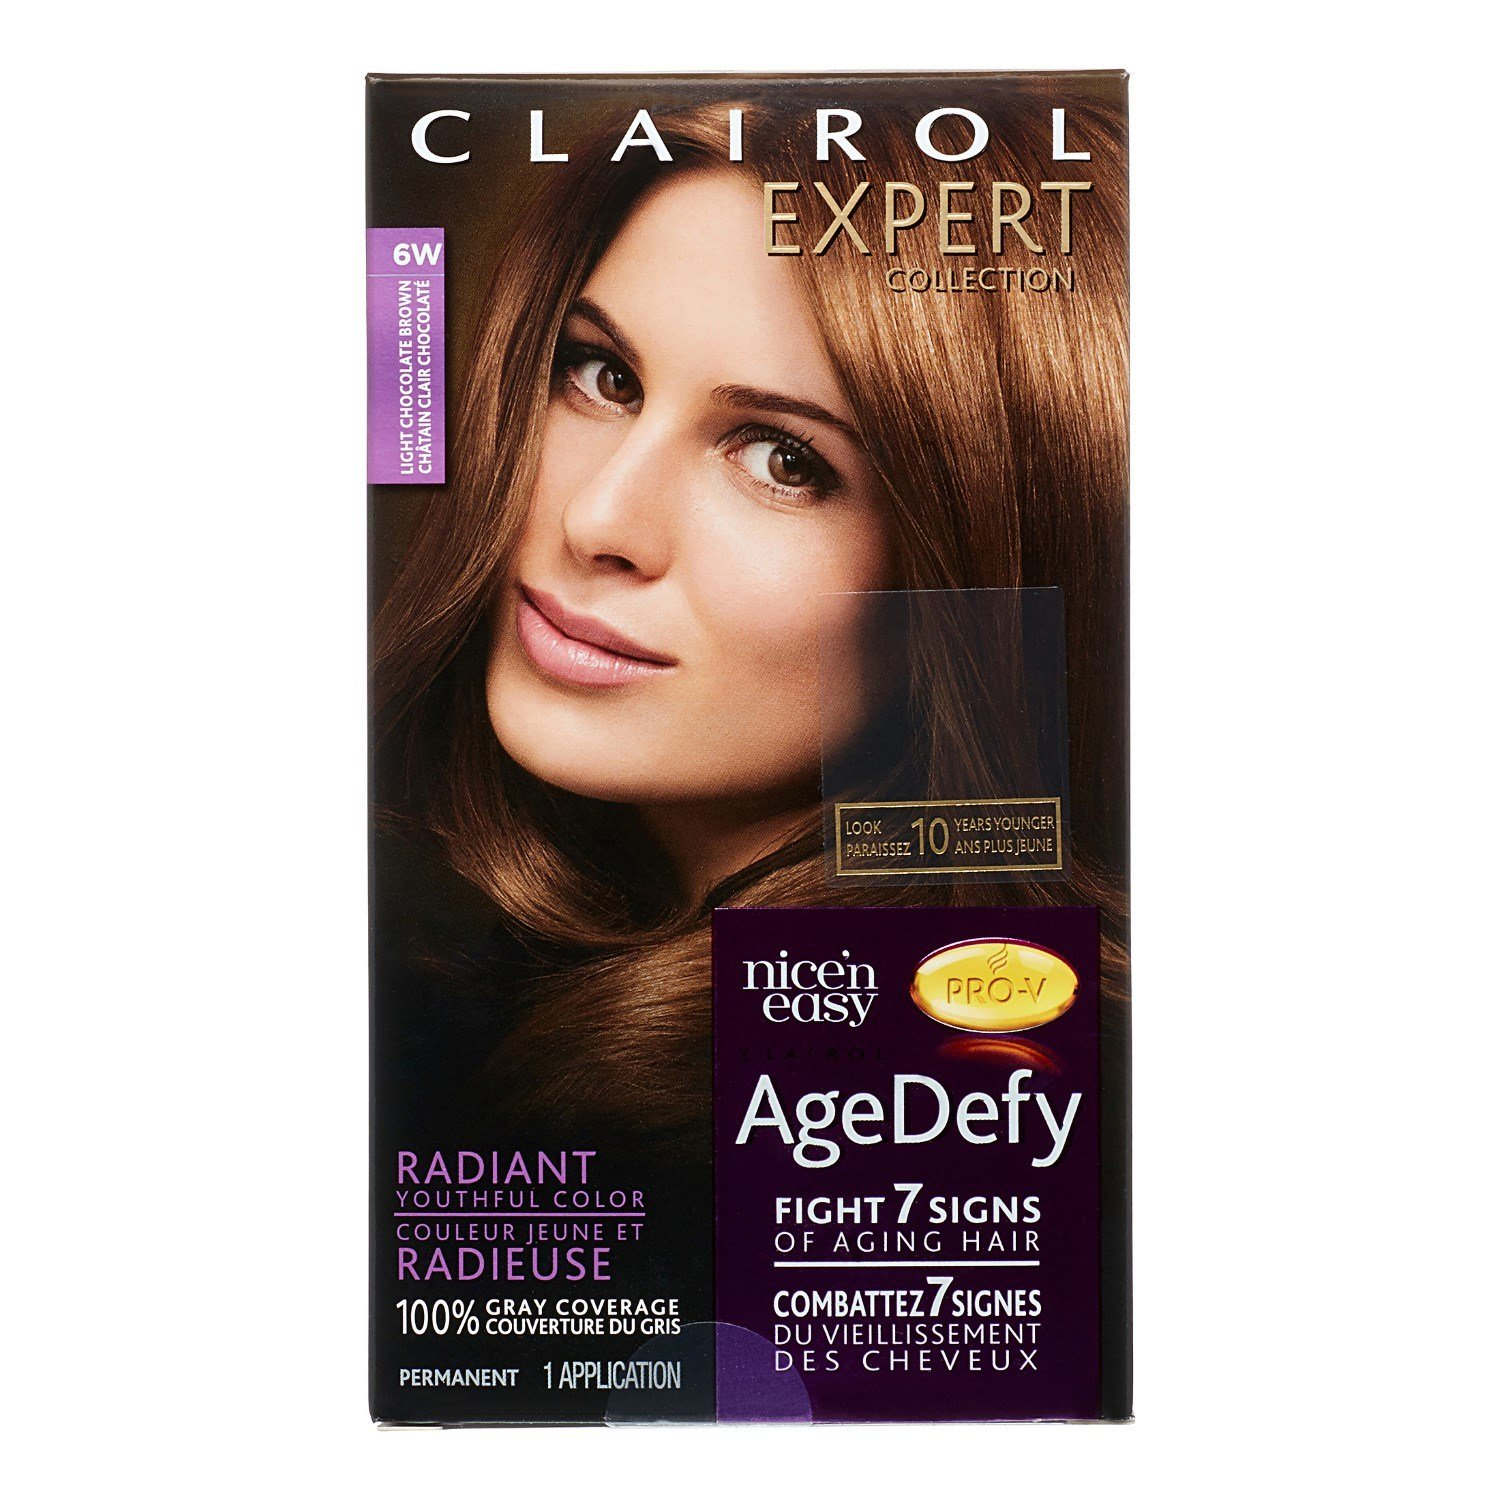 The Best Clairol Expert Collection Age Defy Permanent Hair Color 6W Pictures